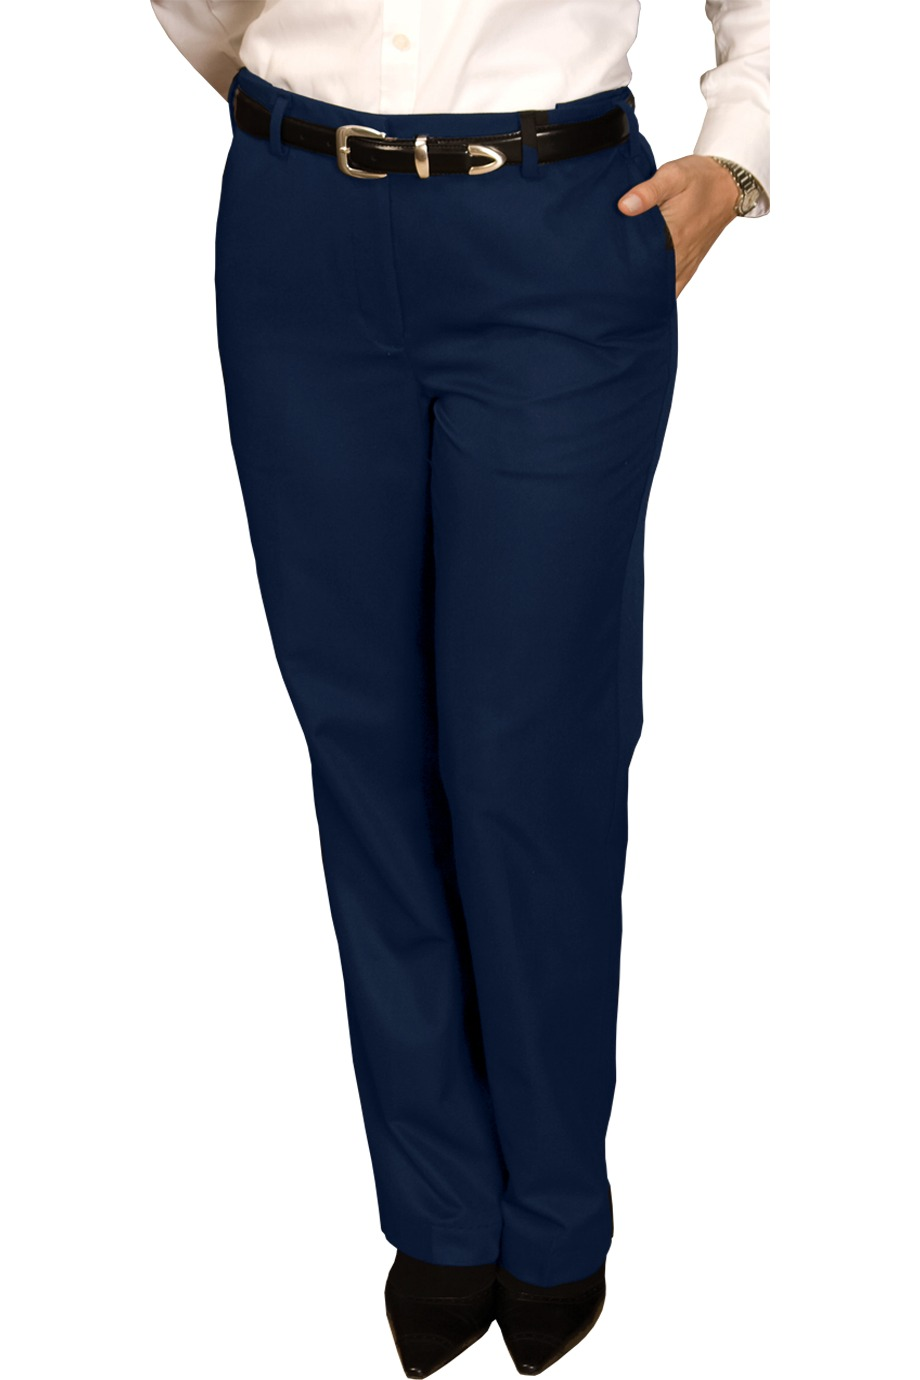 Edwards Garment 8579 - Women's Blended Chino Flat Front Pant